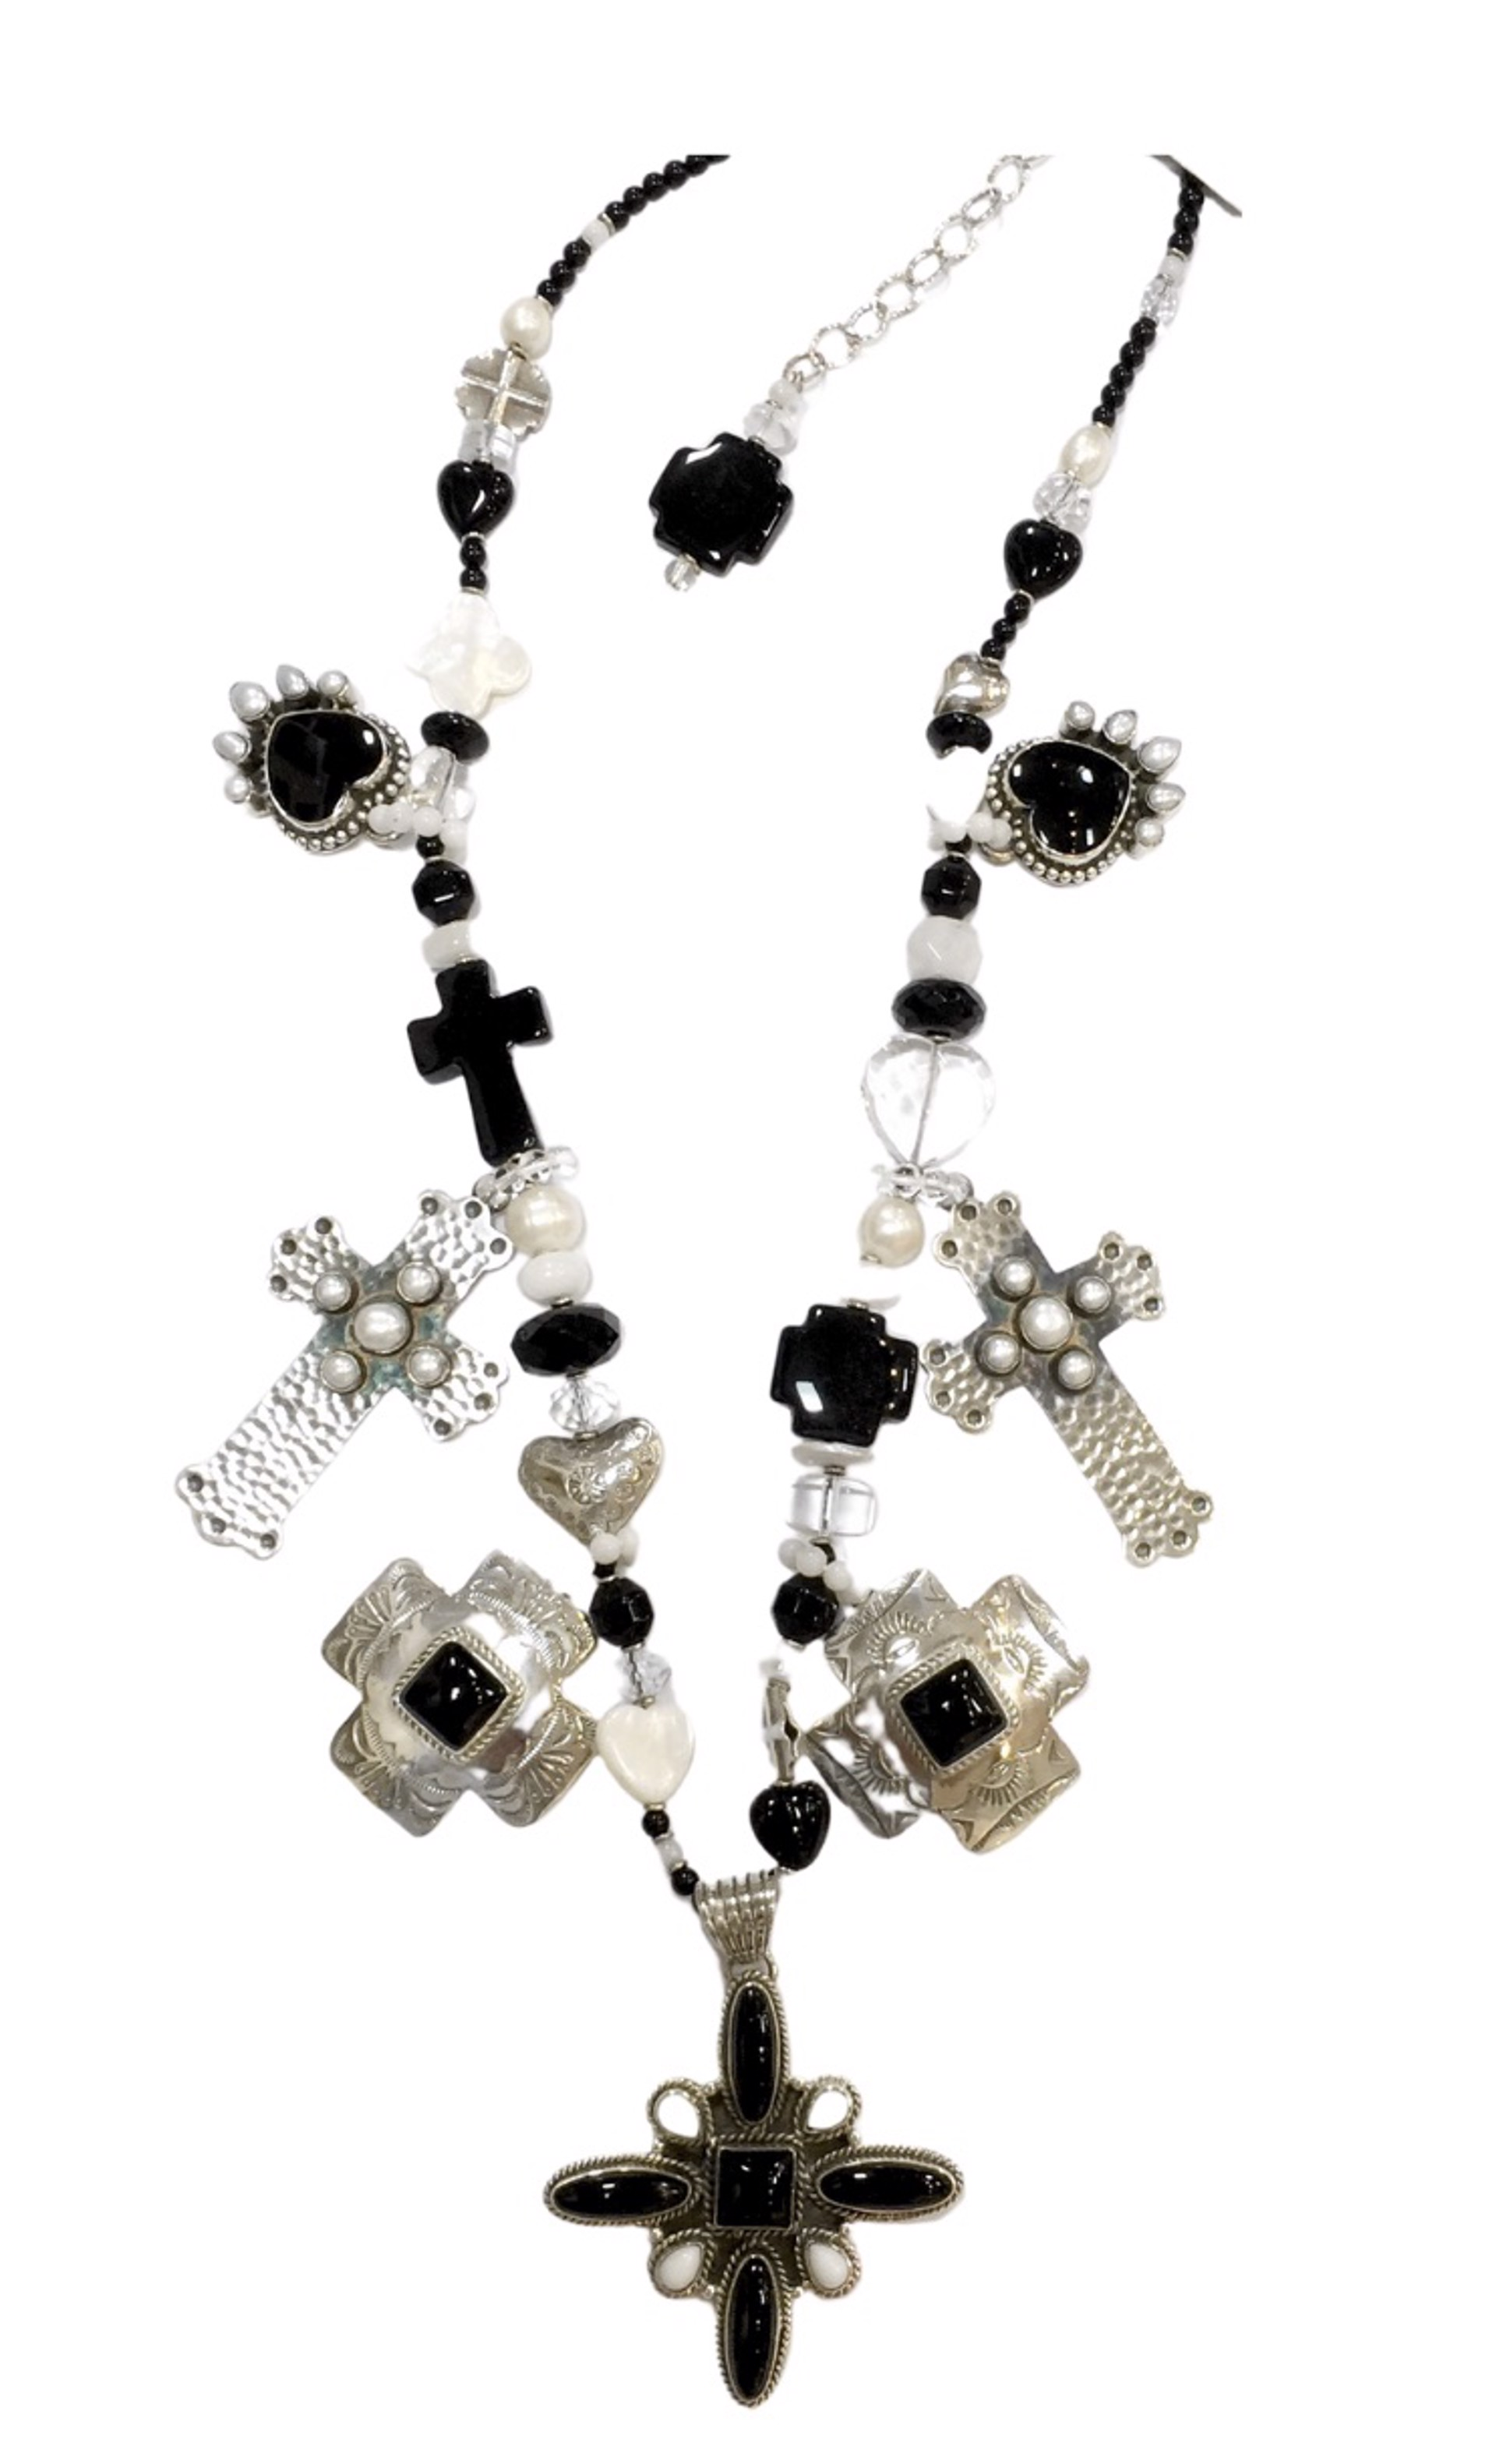 KY 1353C - Single Strand Cross & Heart Necklace, Black Onyx,Rock Crystal With Sterling Silver by Kim Yubeta